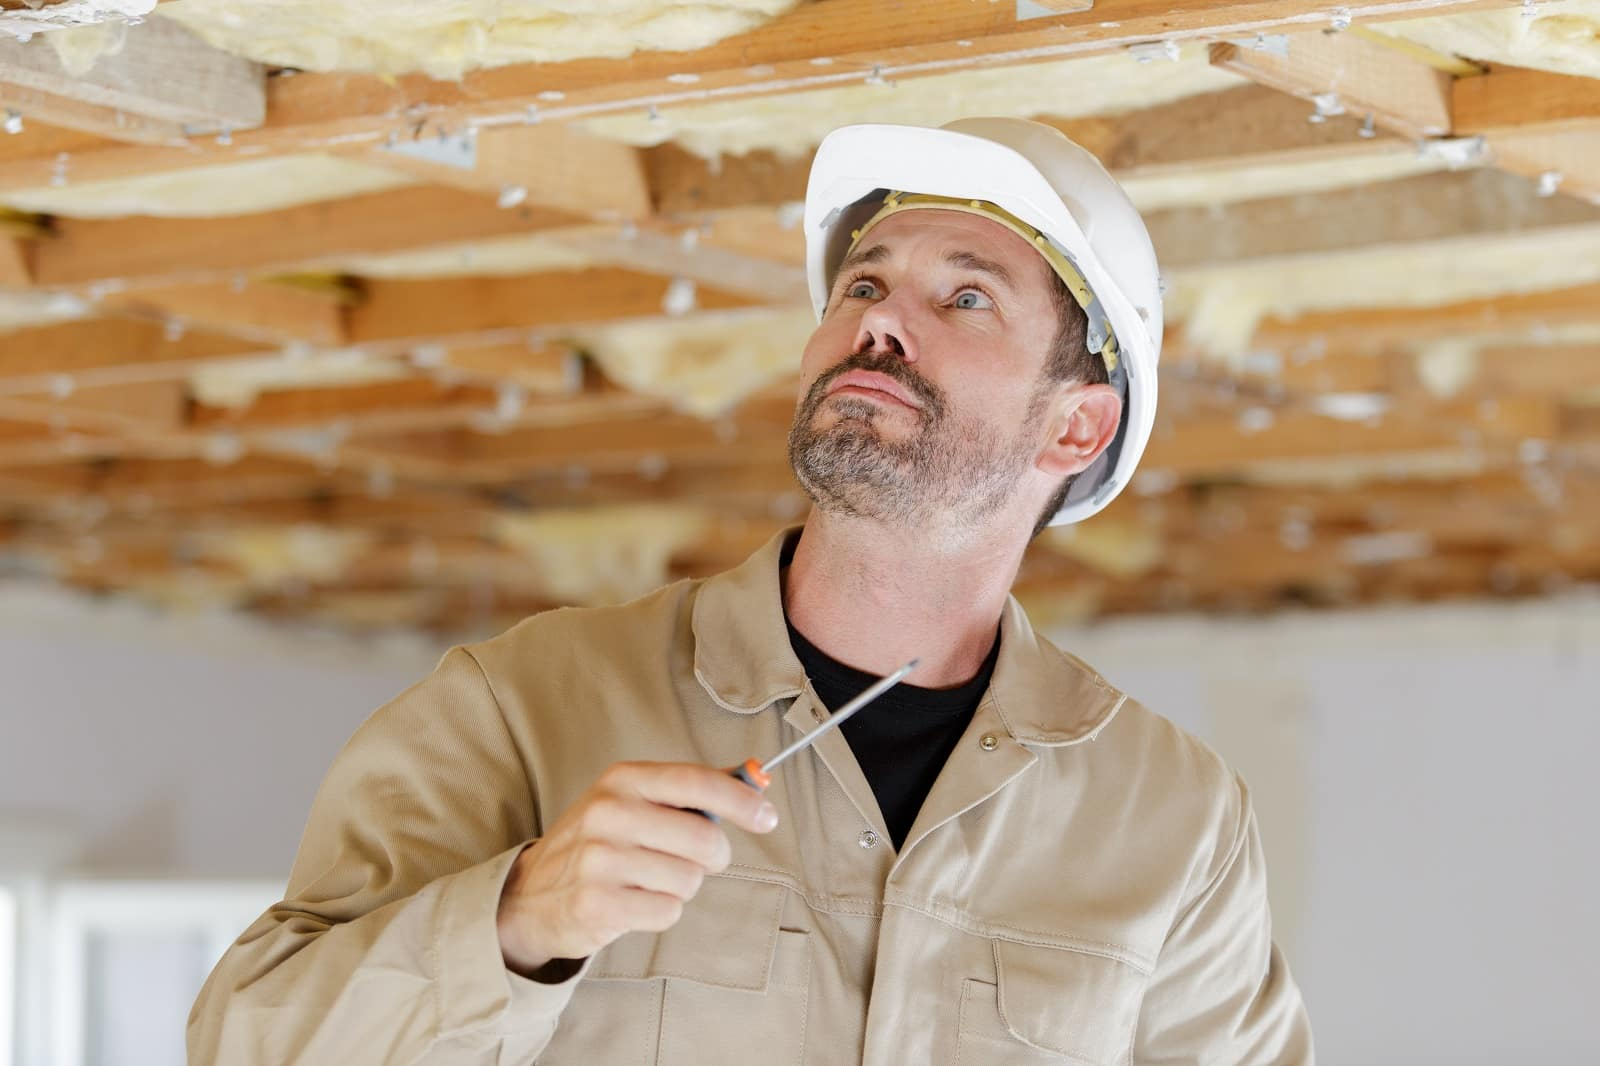 4 Things To Know Before Starting Your Basement Renovation. Refer to professional